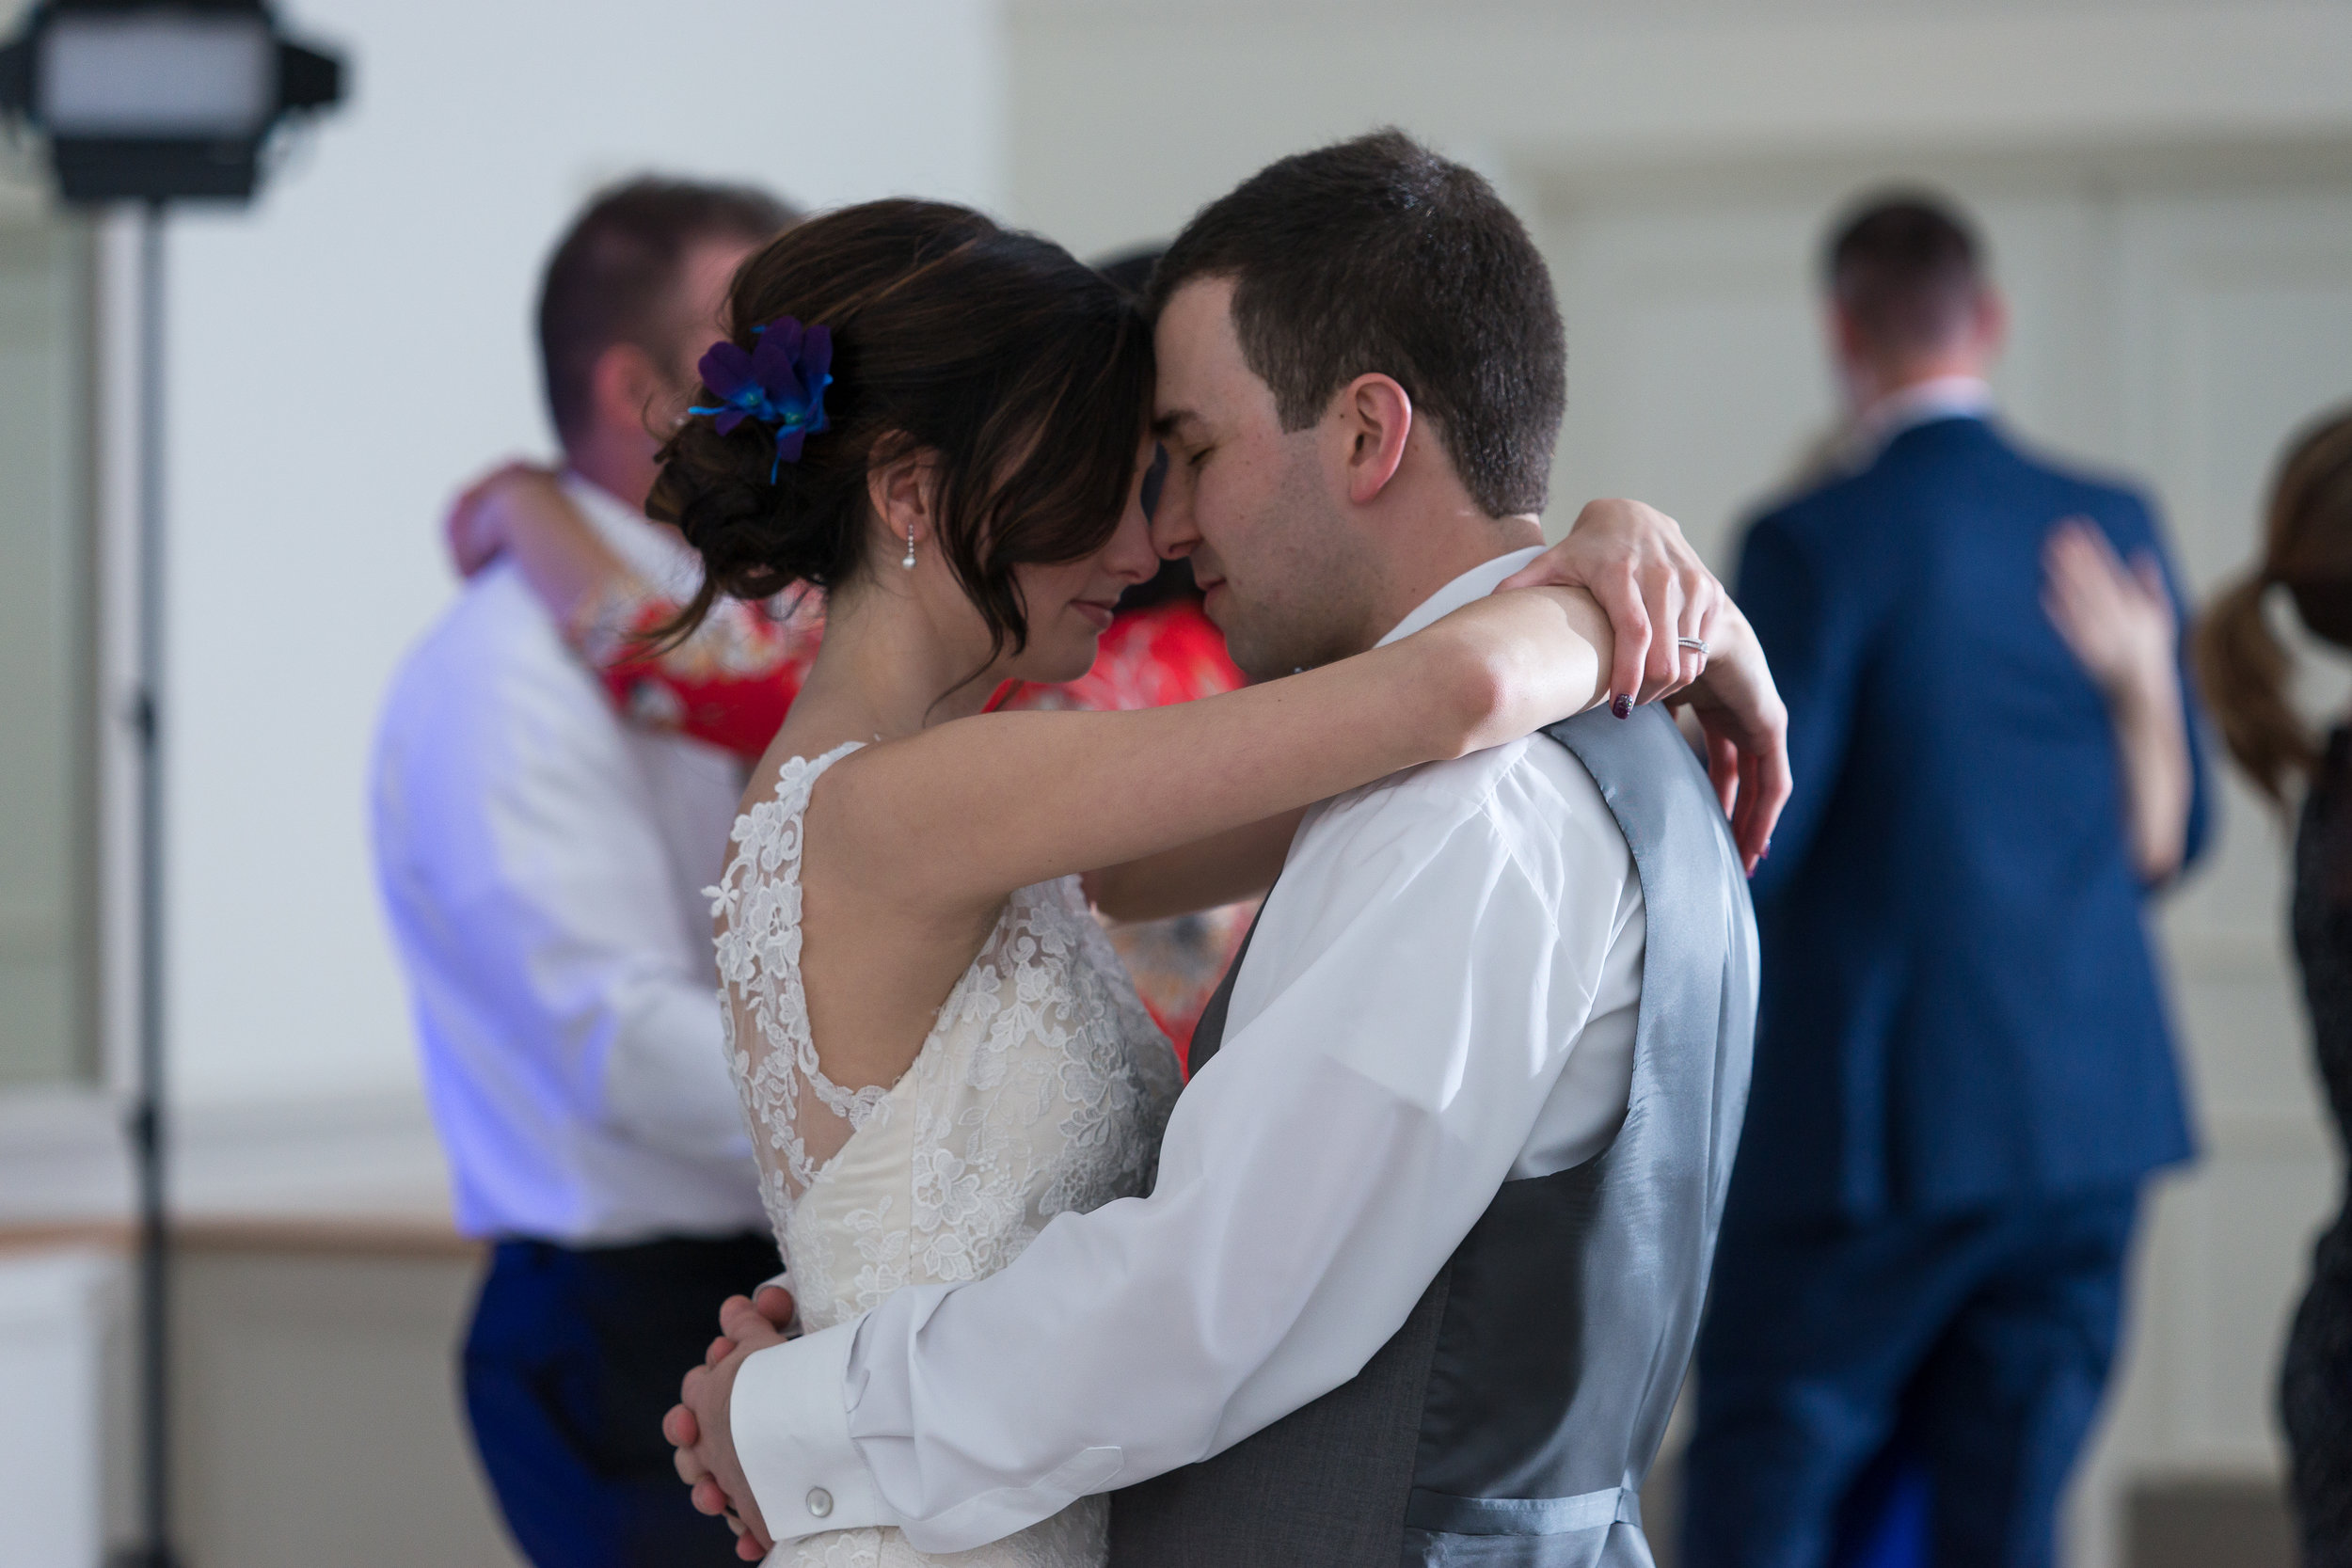 wedding dance pictures, wedding dancing, wedding parties, wedding pictures